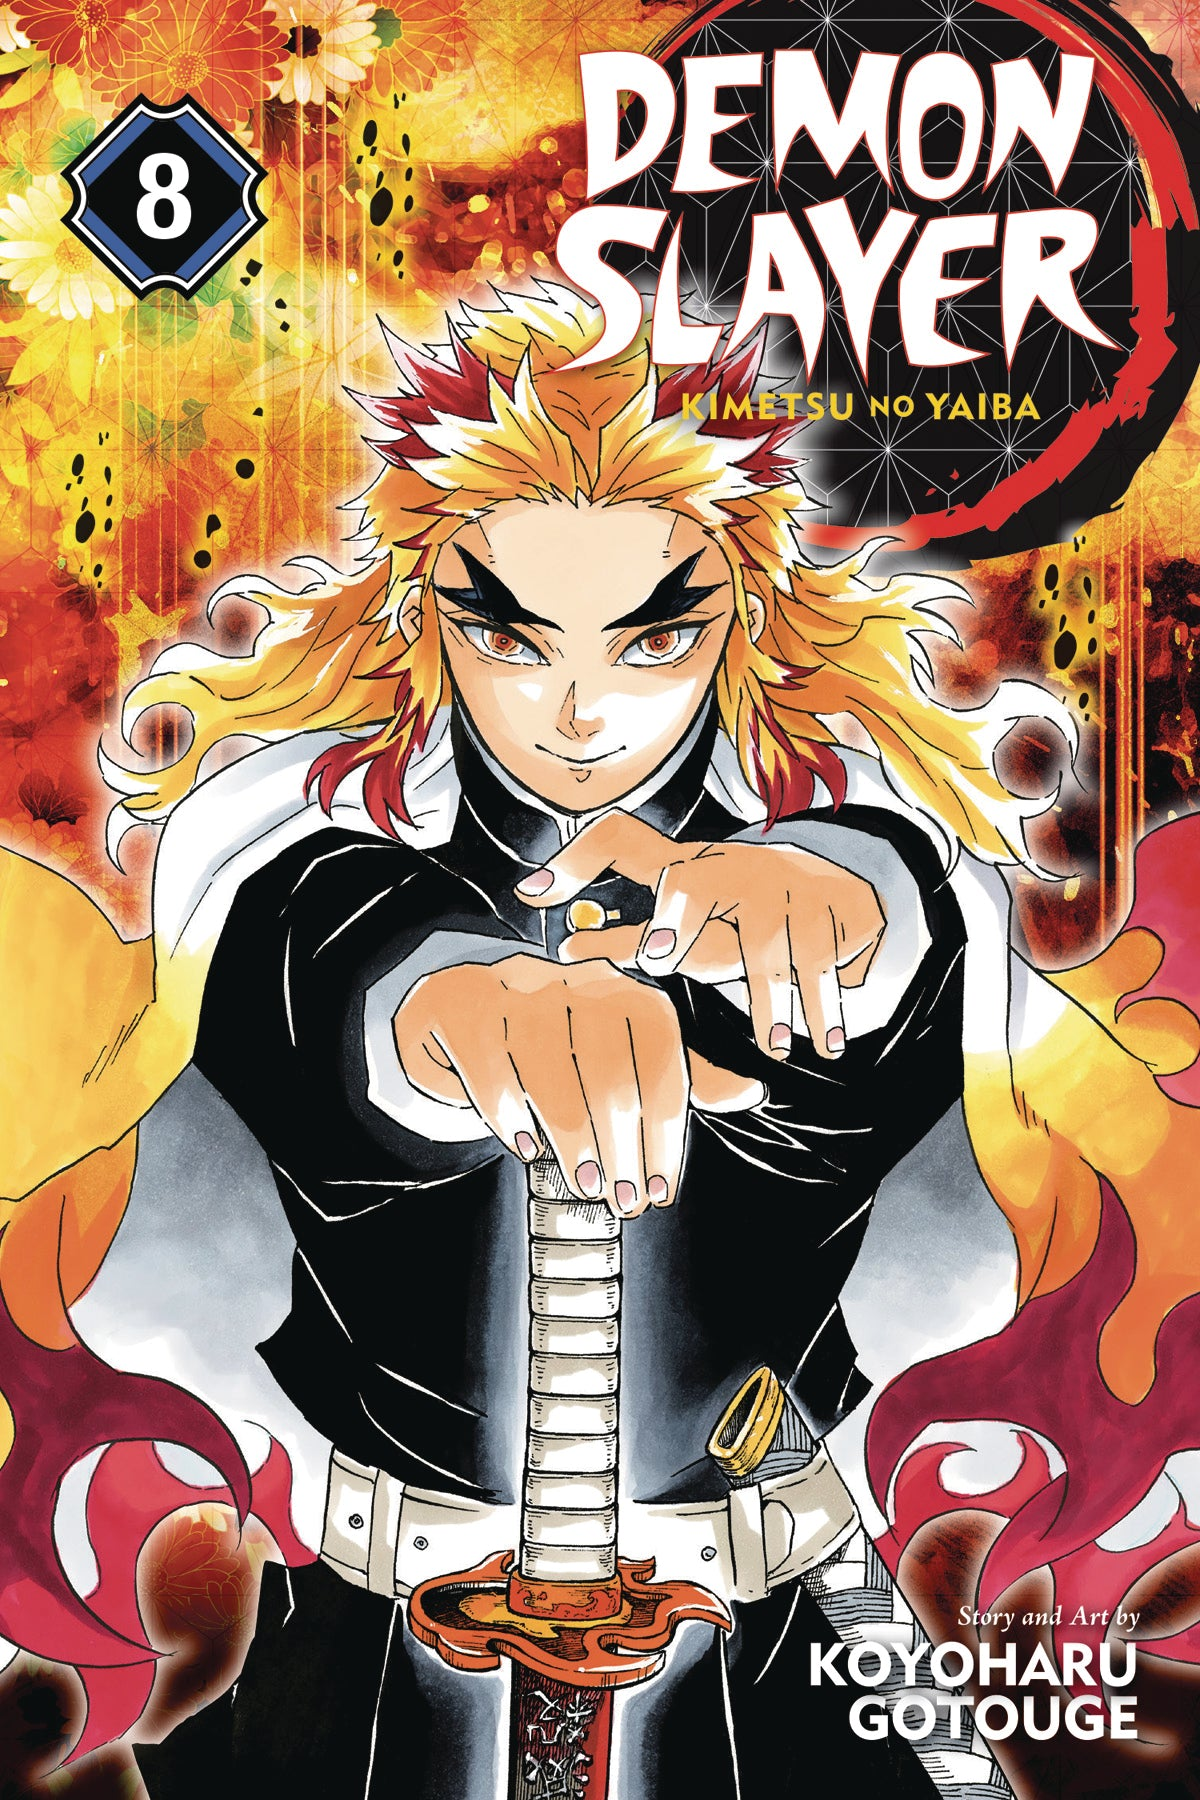 DEMON SLAYER KIMETSU NO YAIBA GN VOL 08 (C: 1-0-1)